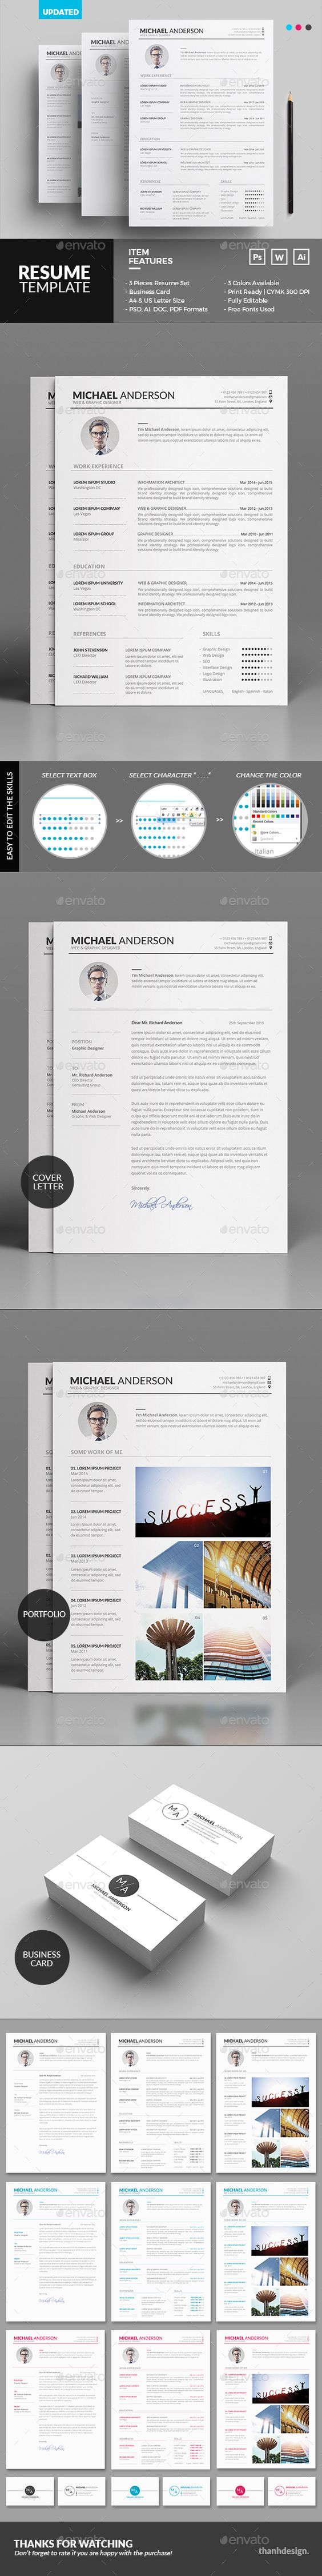 A Resume Template%0A Resume  Resumes Stationery   Resume Templates   Pinterest   Cv template   Creative cv template and Creative cv